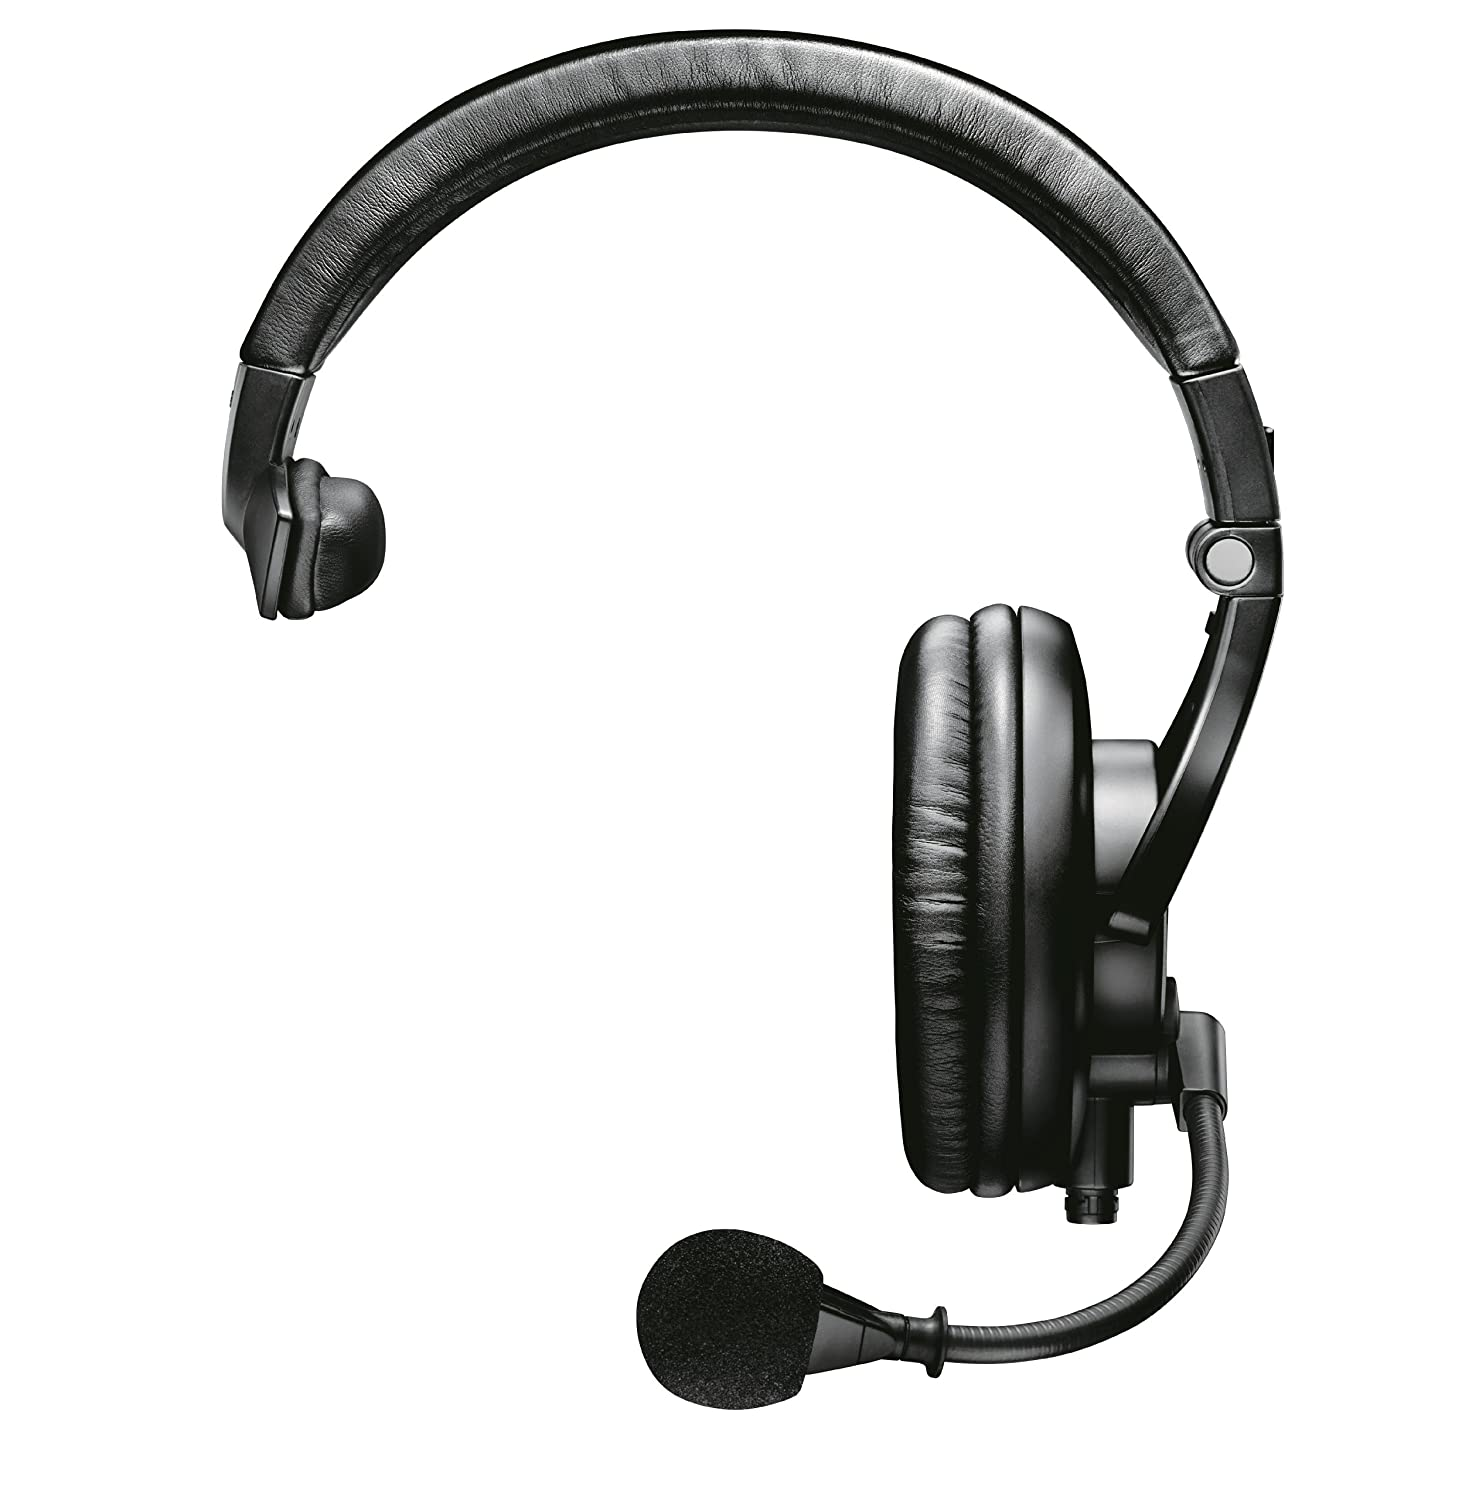 Amazon.com: Shure BRH441M Single-Sided Broadcast Headset: Musical Instruments